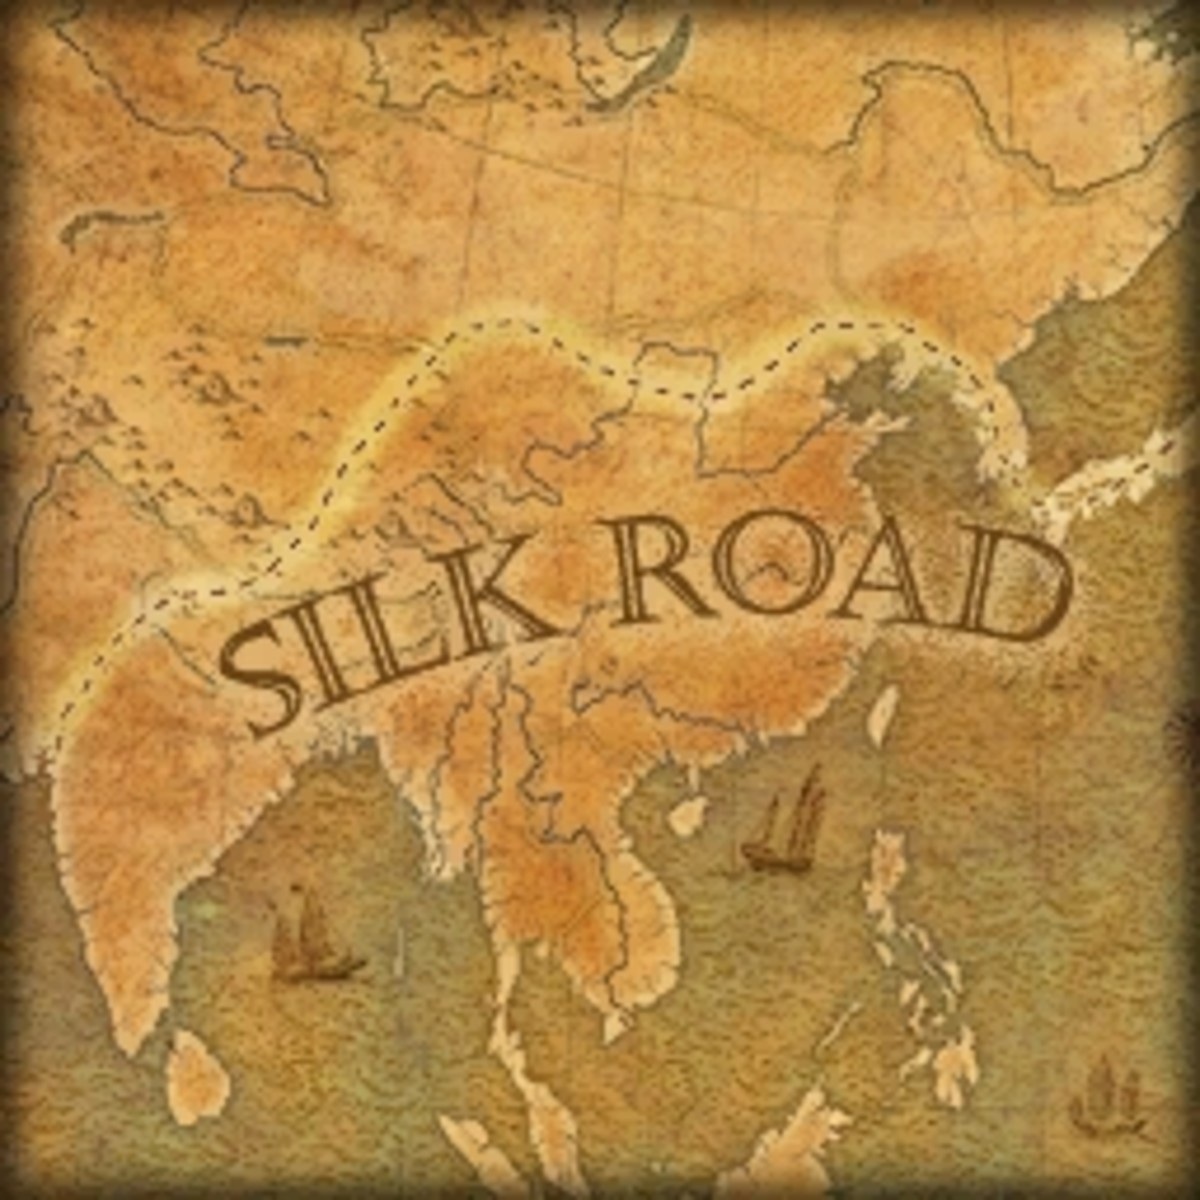 Silk Road History: Enabling Trade From China to the Parthian and Roman Empires